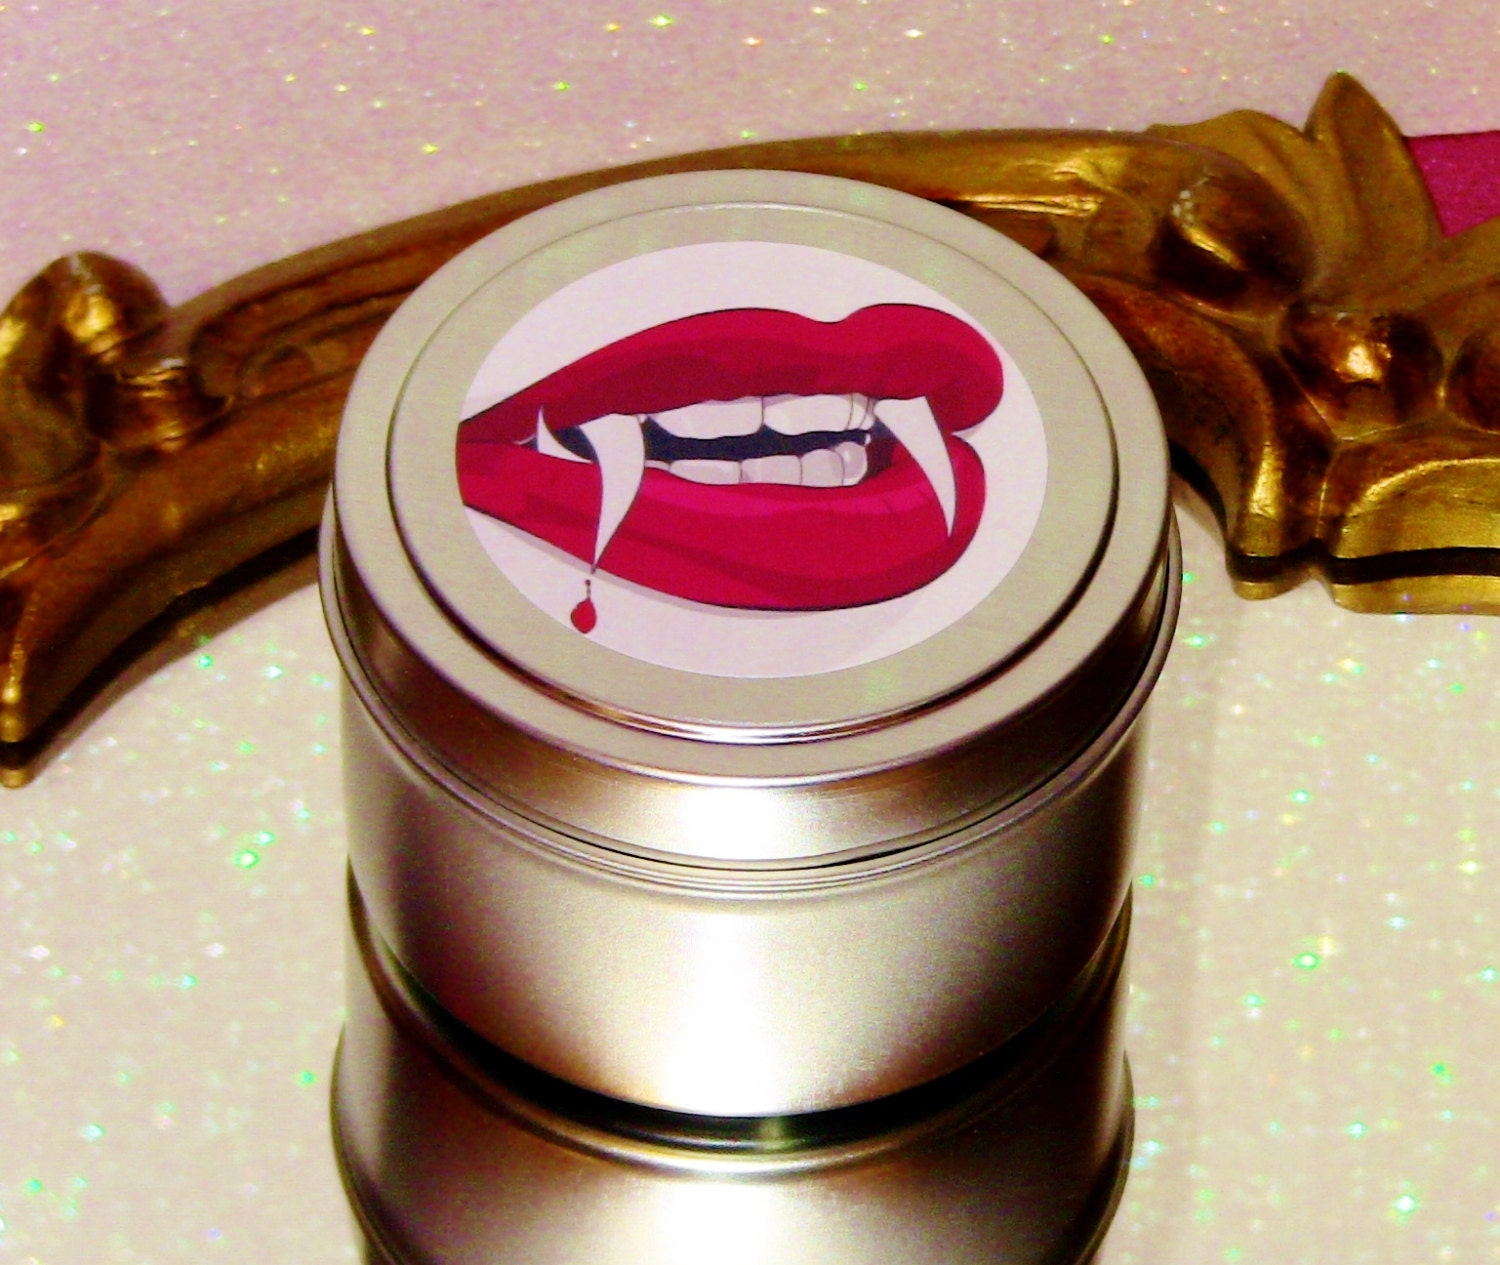 Vampire Bite Soy Candle Bdsm Pinup Girl Sexy Cute Kreepy -7931